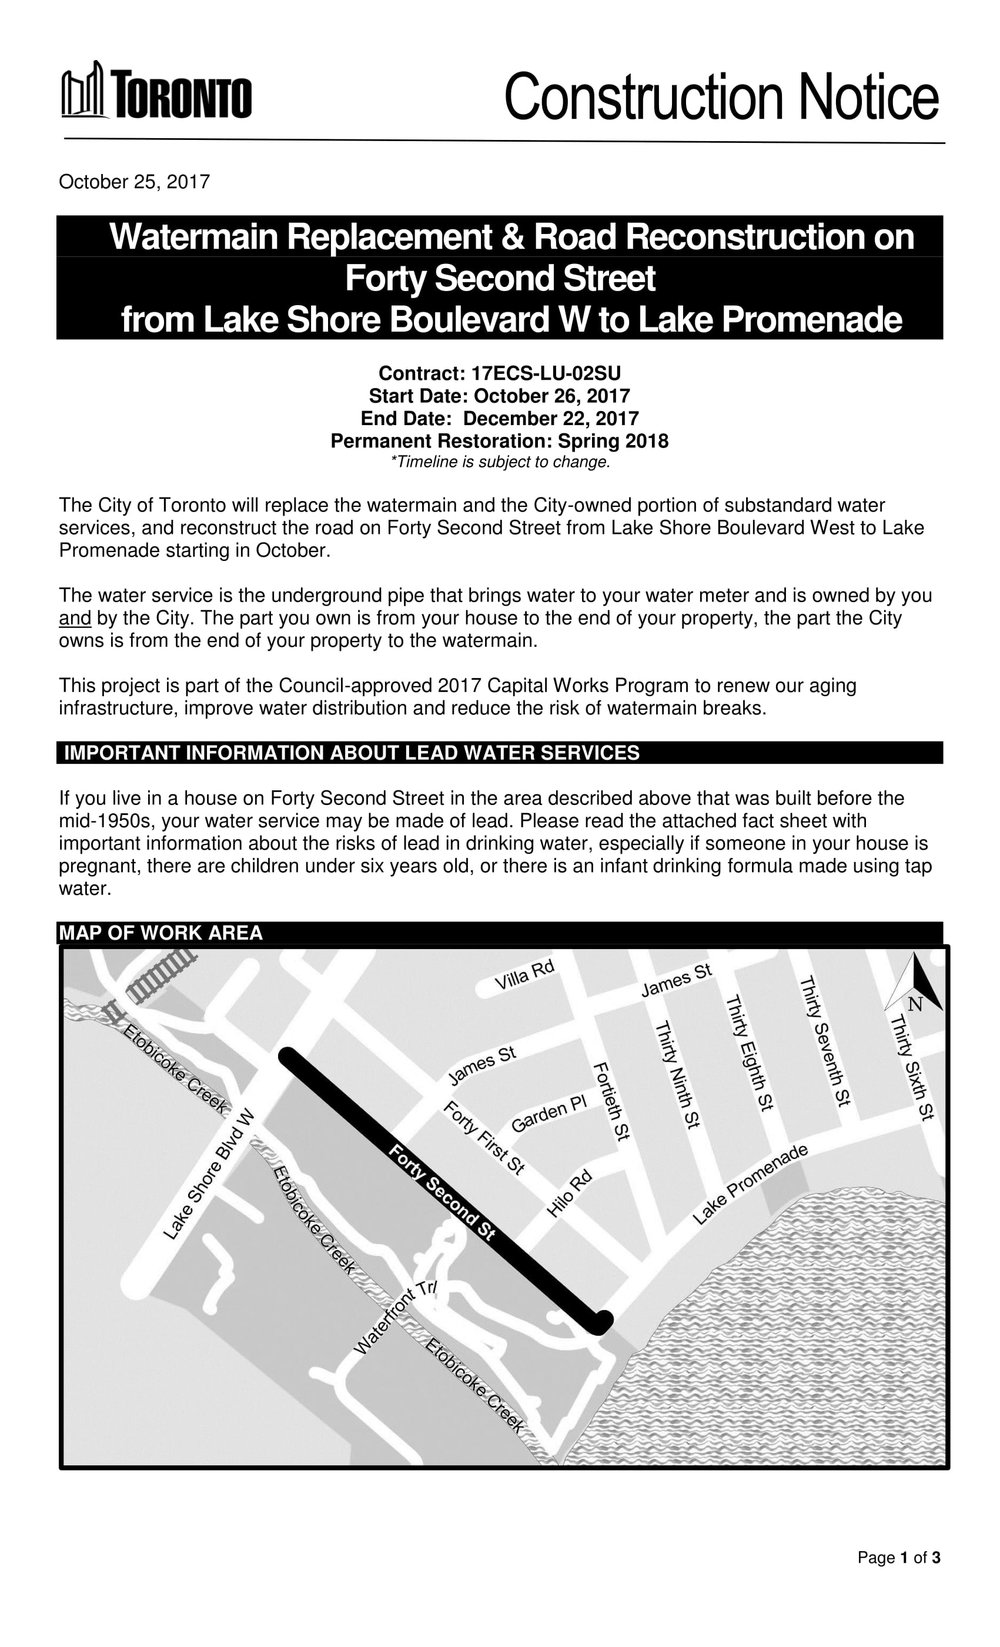 wm Construction Notice - Forty Second St _ Ward 6-1.jpg